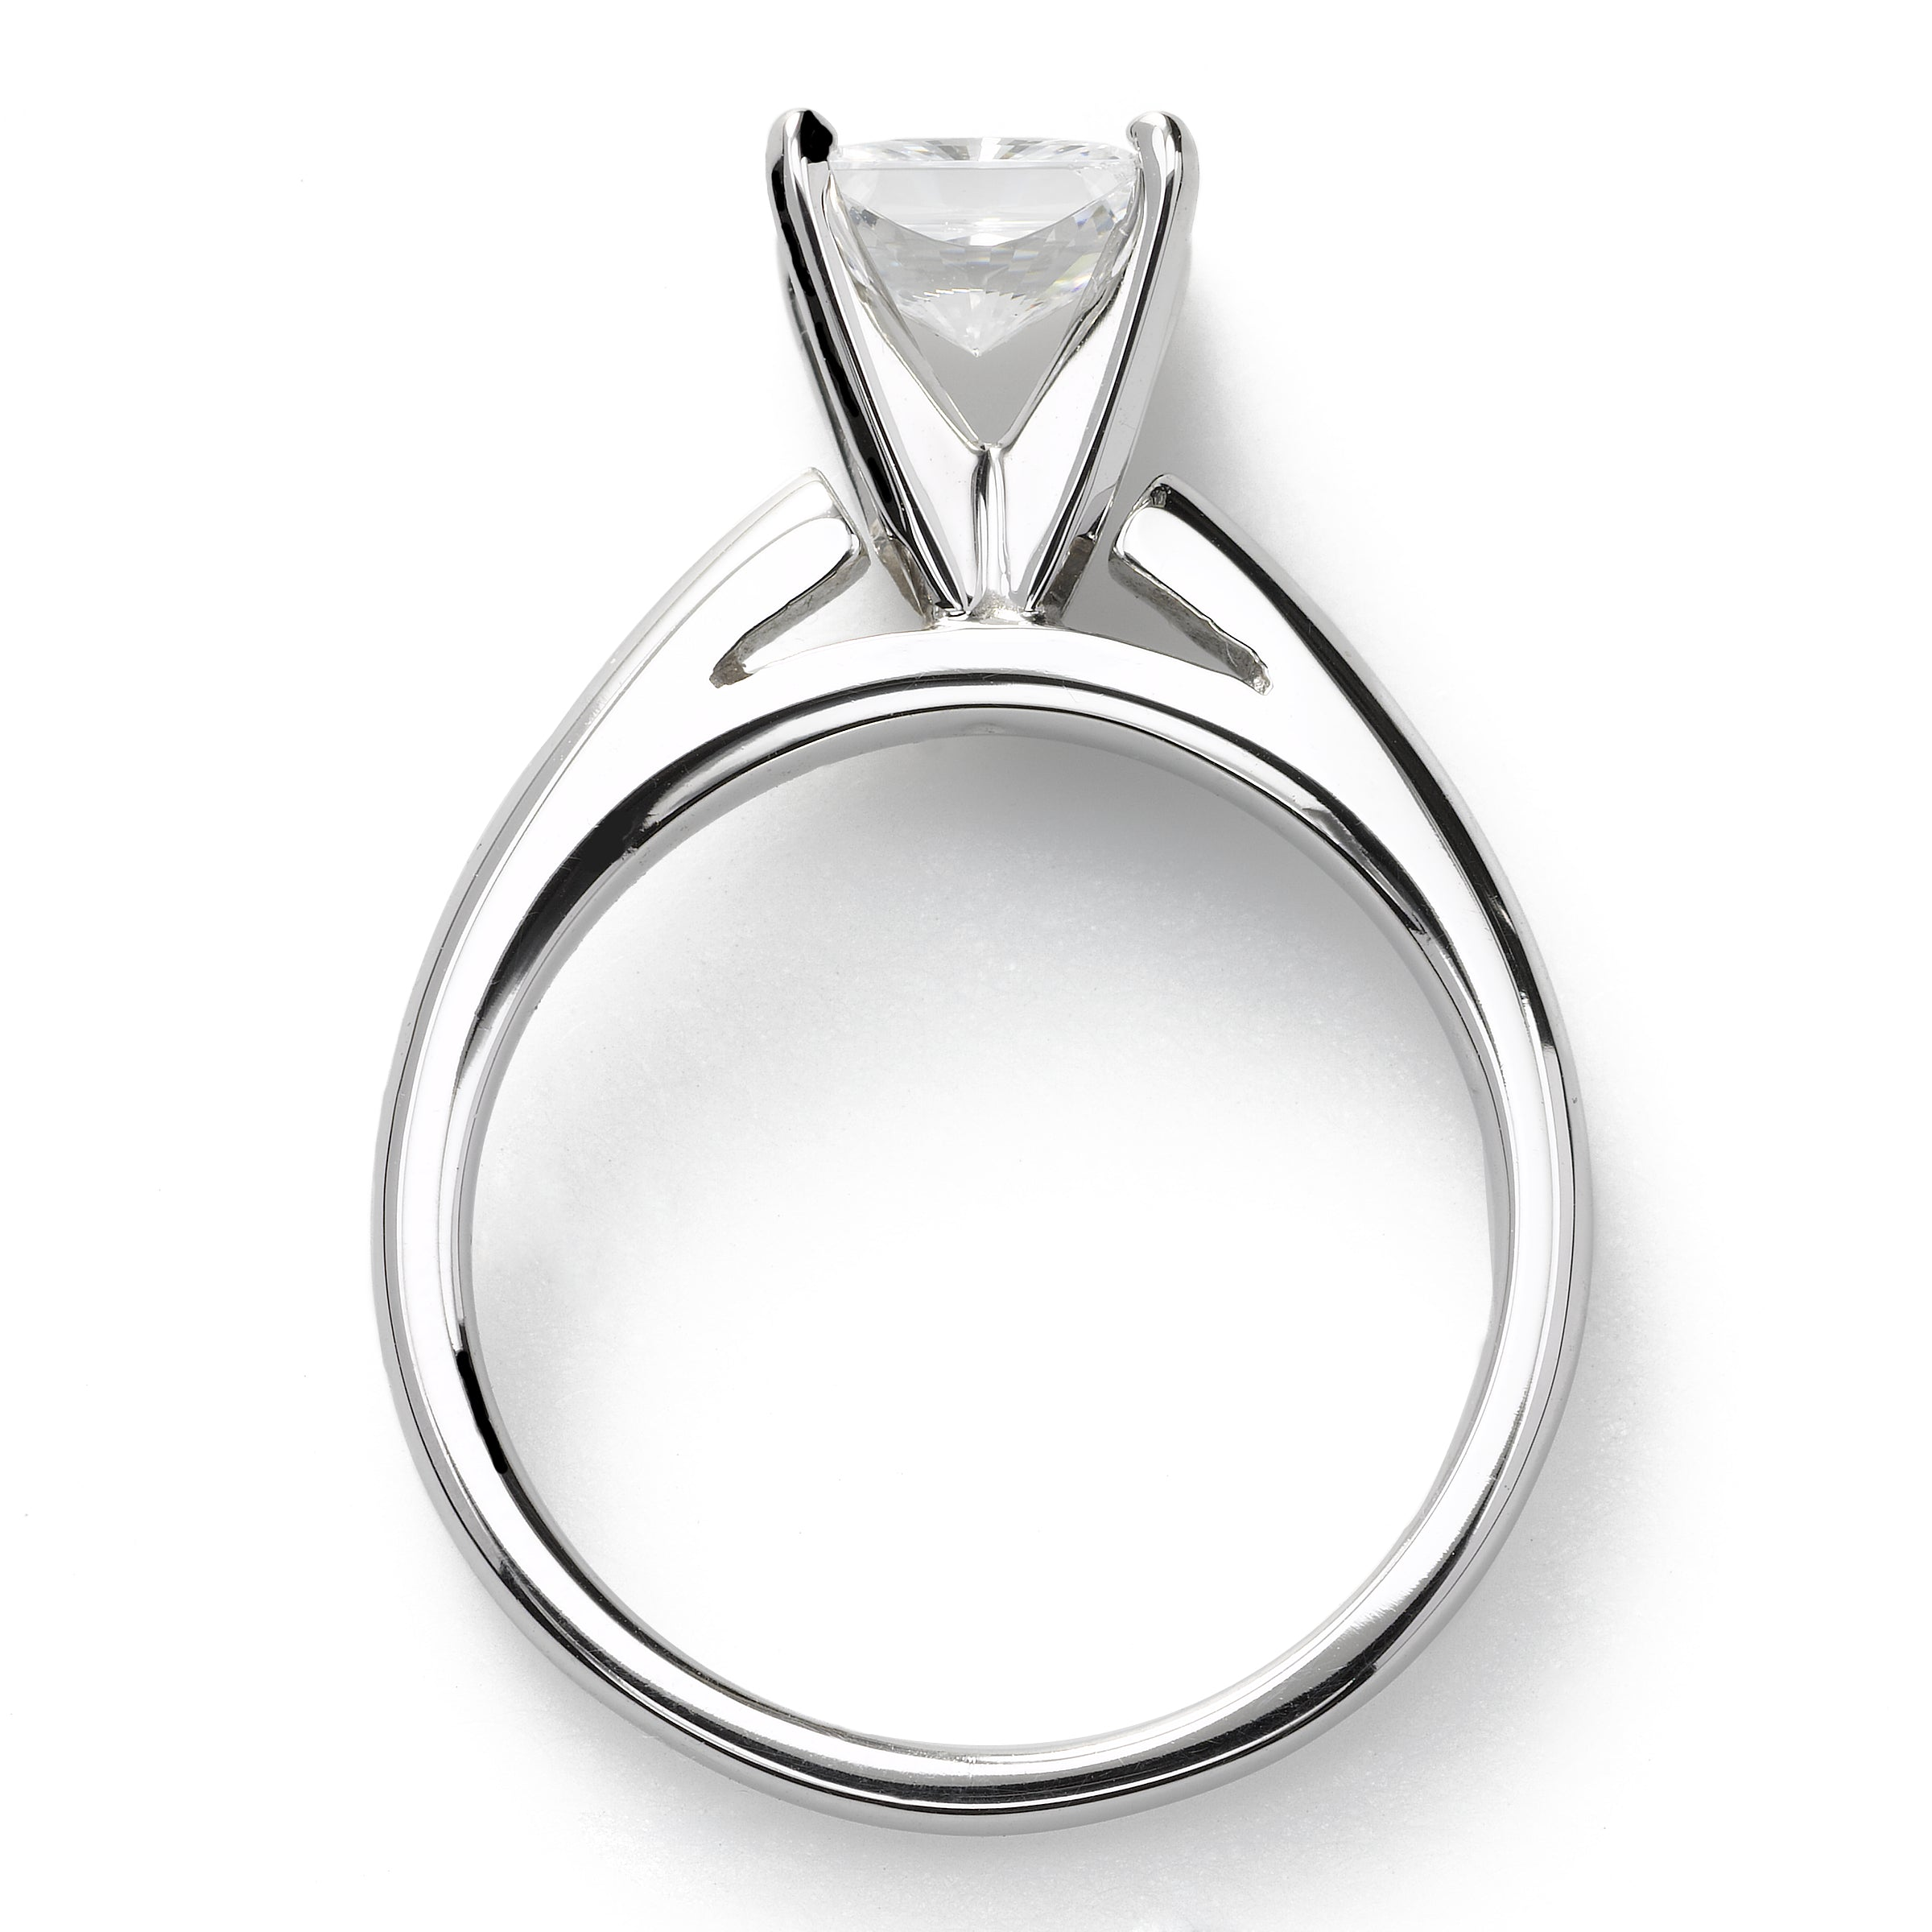 Classic Princess Cut Engagement Ring, 1.25 Carat, 14K White Gold